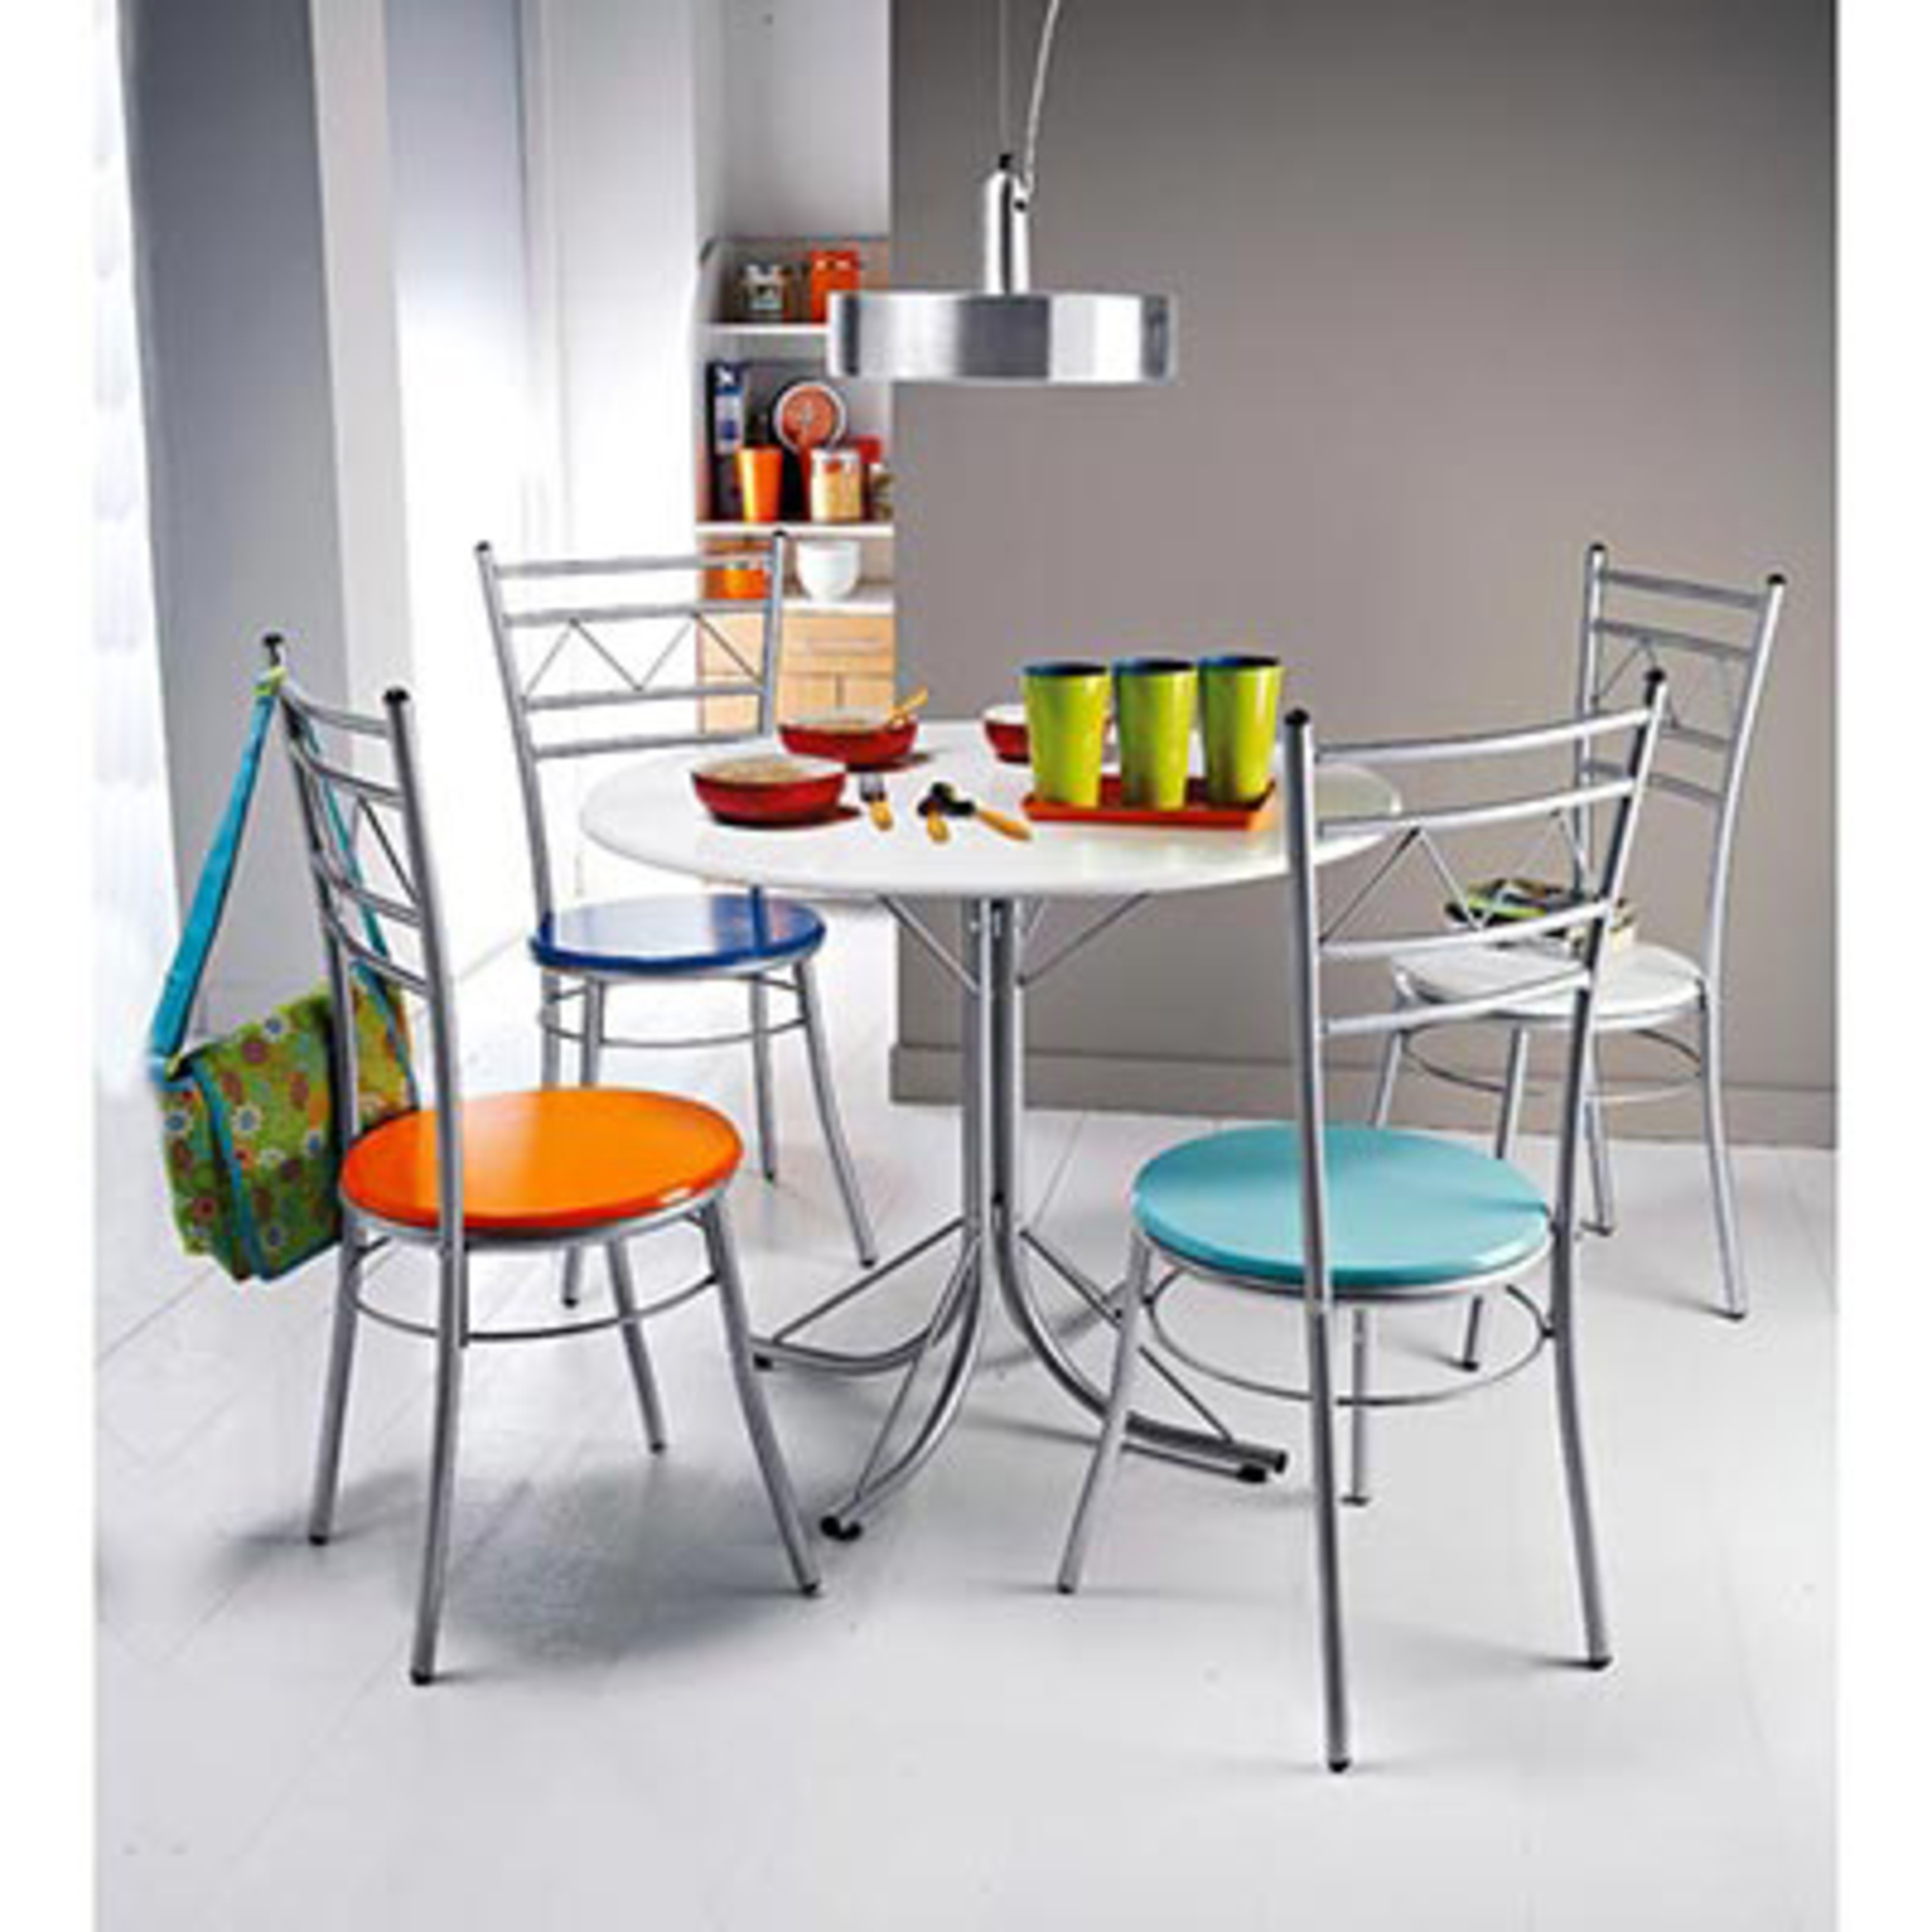 table ronde 4 chaises cocktail multicolore anniversaire 40 ans acheter ce produit au. Black Bedroom Furniture Sets. Home Design Ideas